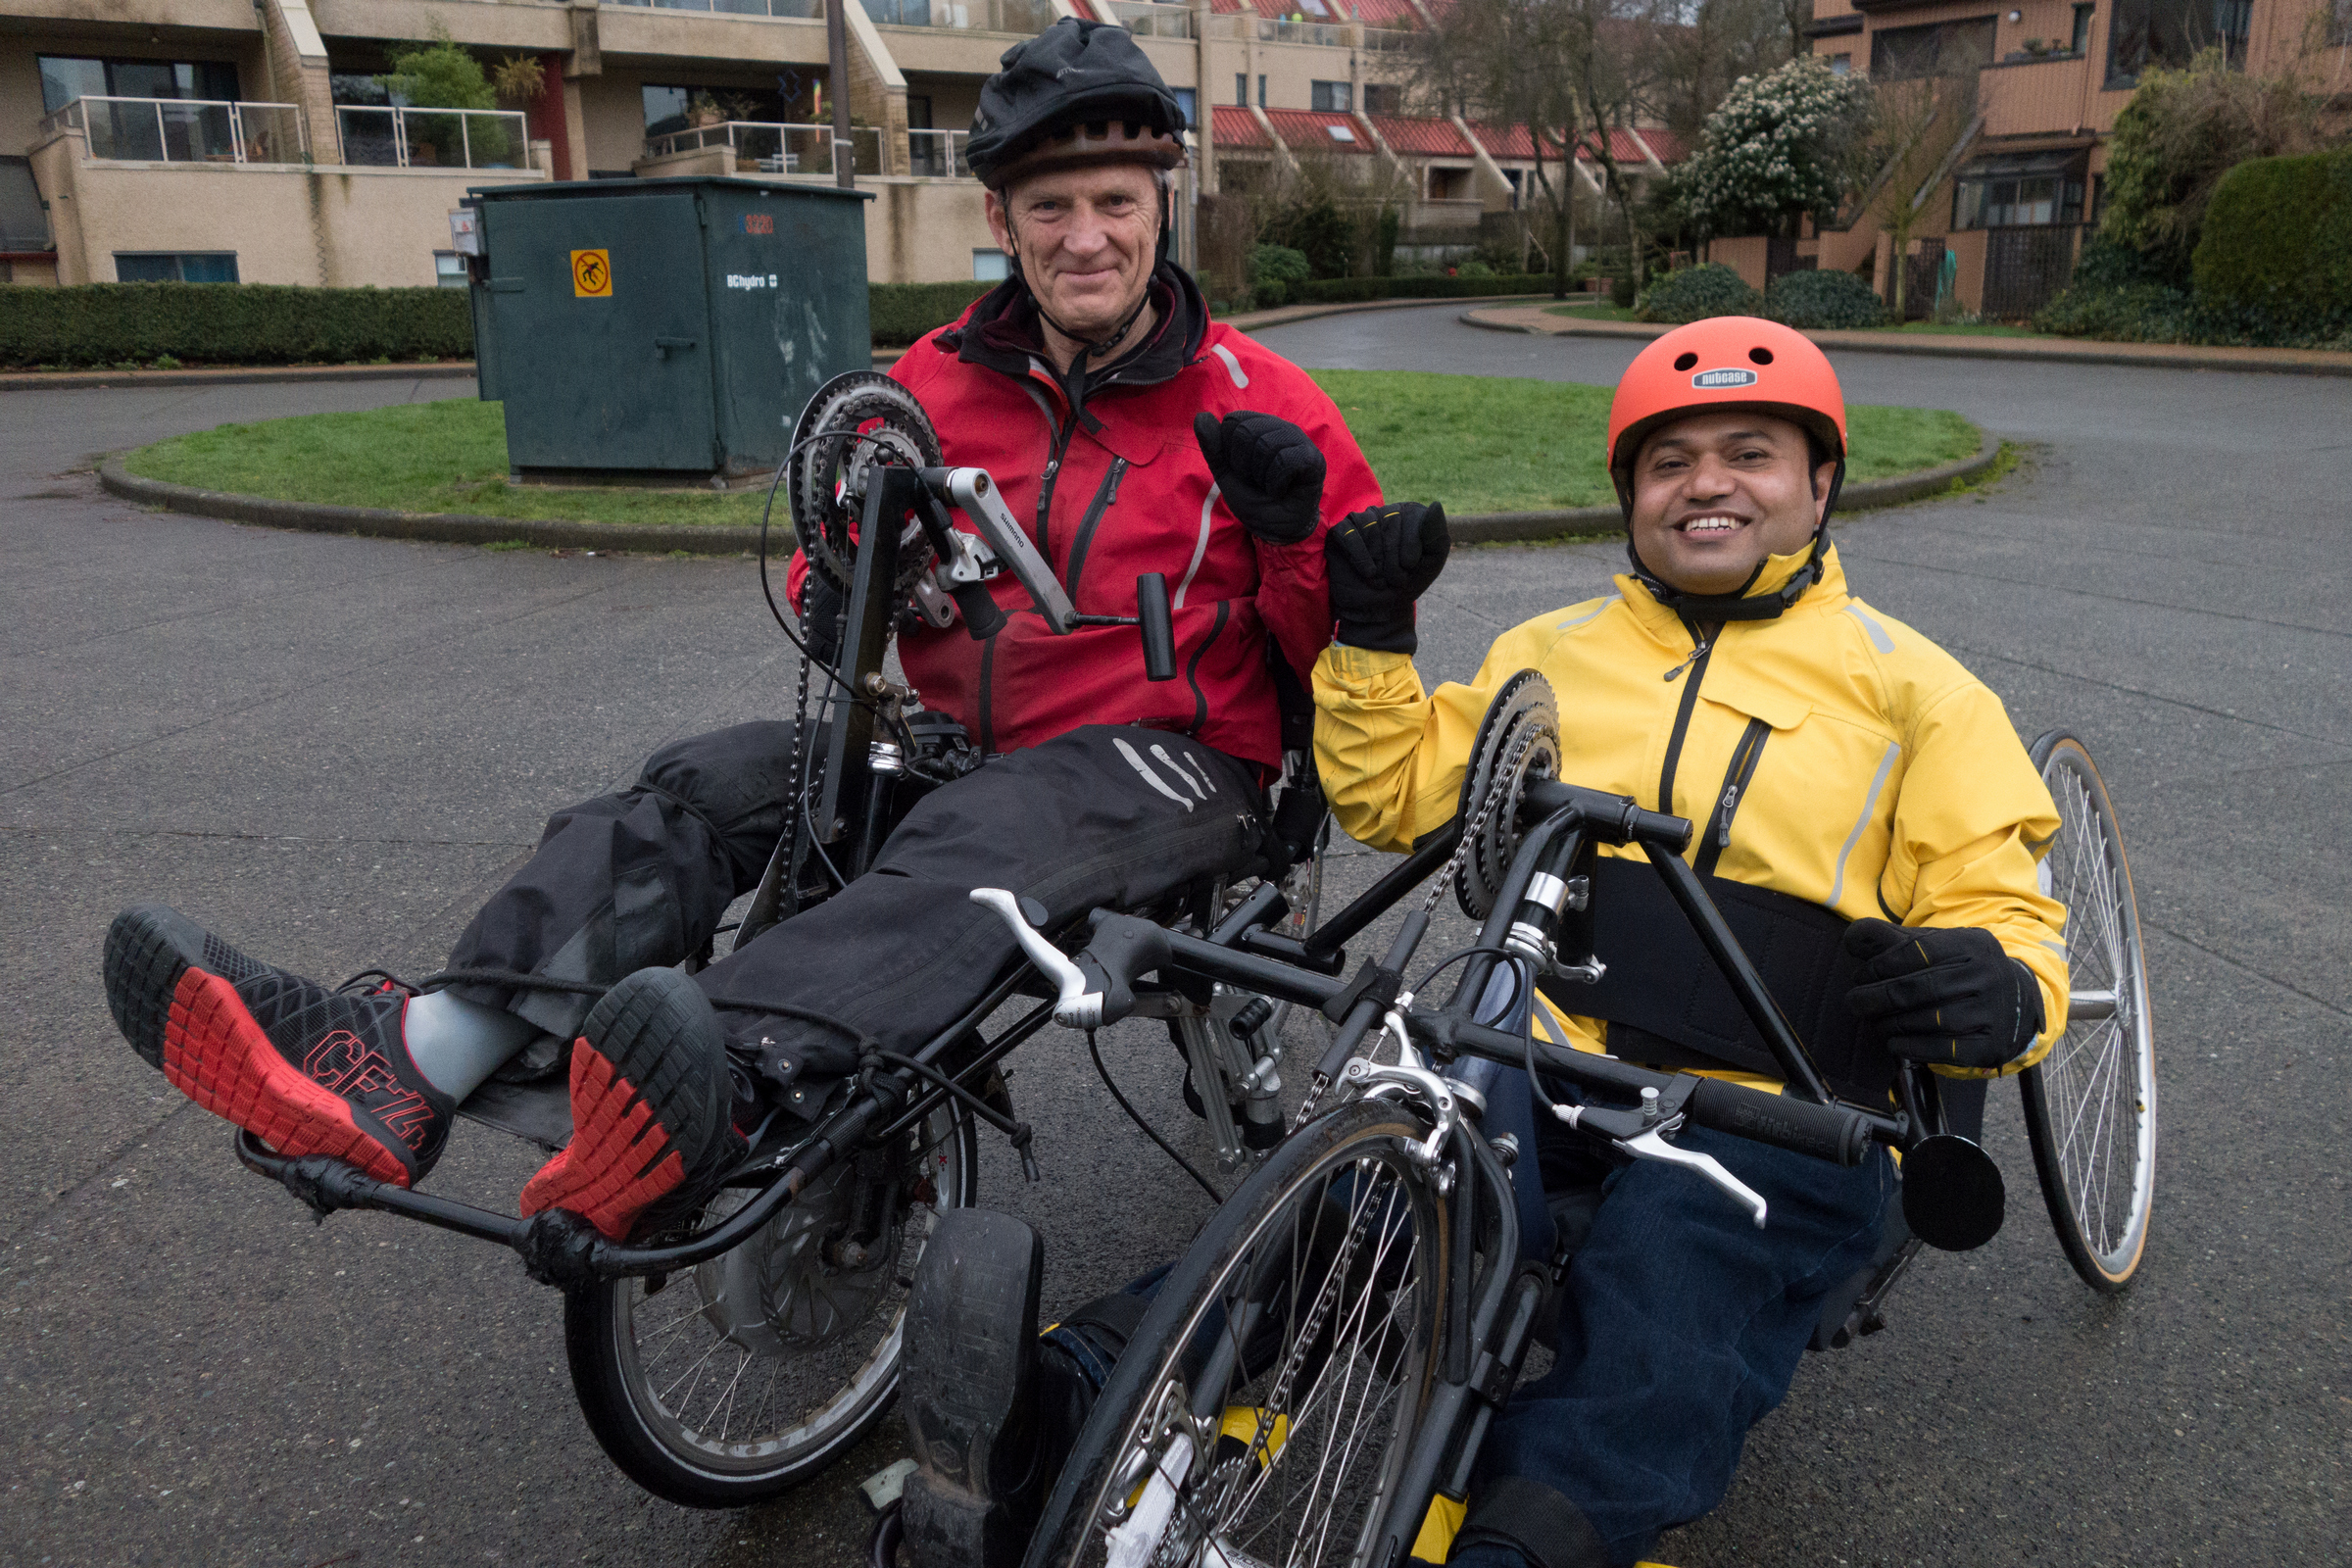 First weekend: Raju and friend Ed Milligan head off to explore the False Creek seawall route on two different handcycles.